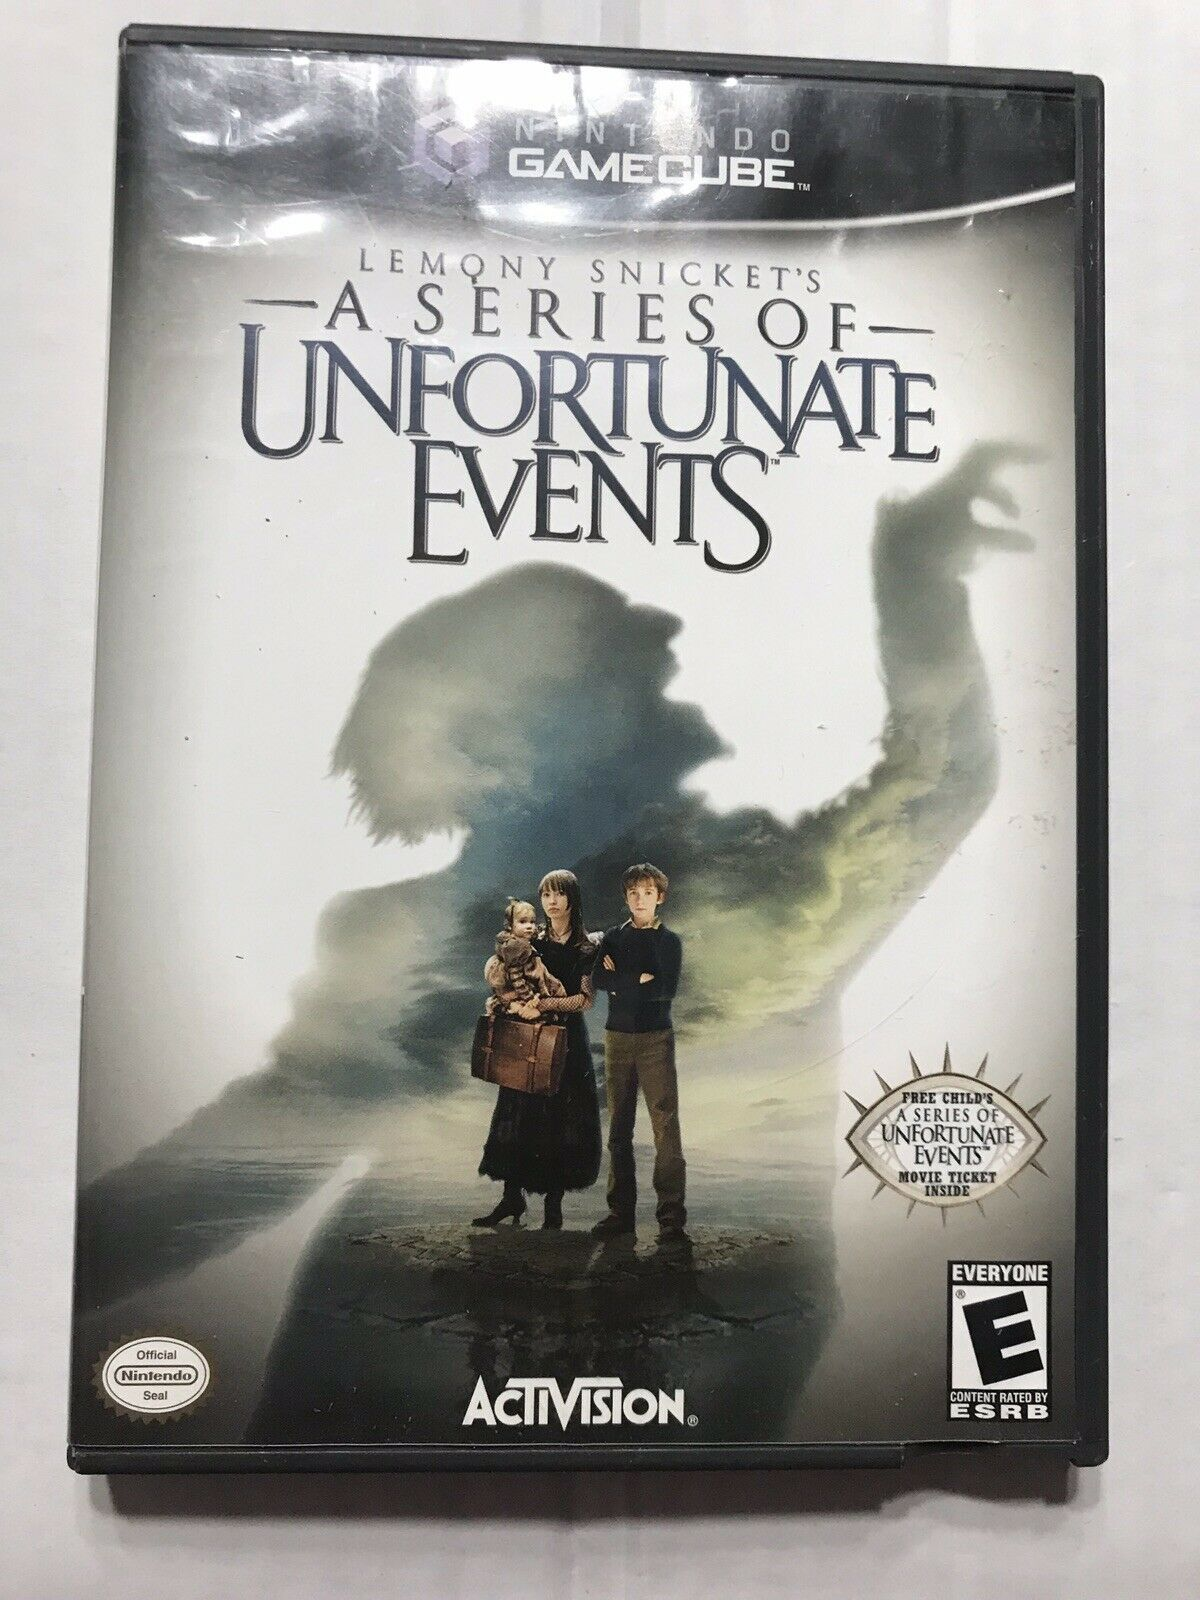 Primary image for Lemony Snicket's A Series of Unfortunate Events (Nintendo GameCube, 2004)